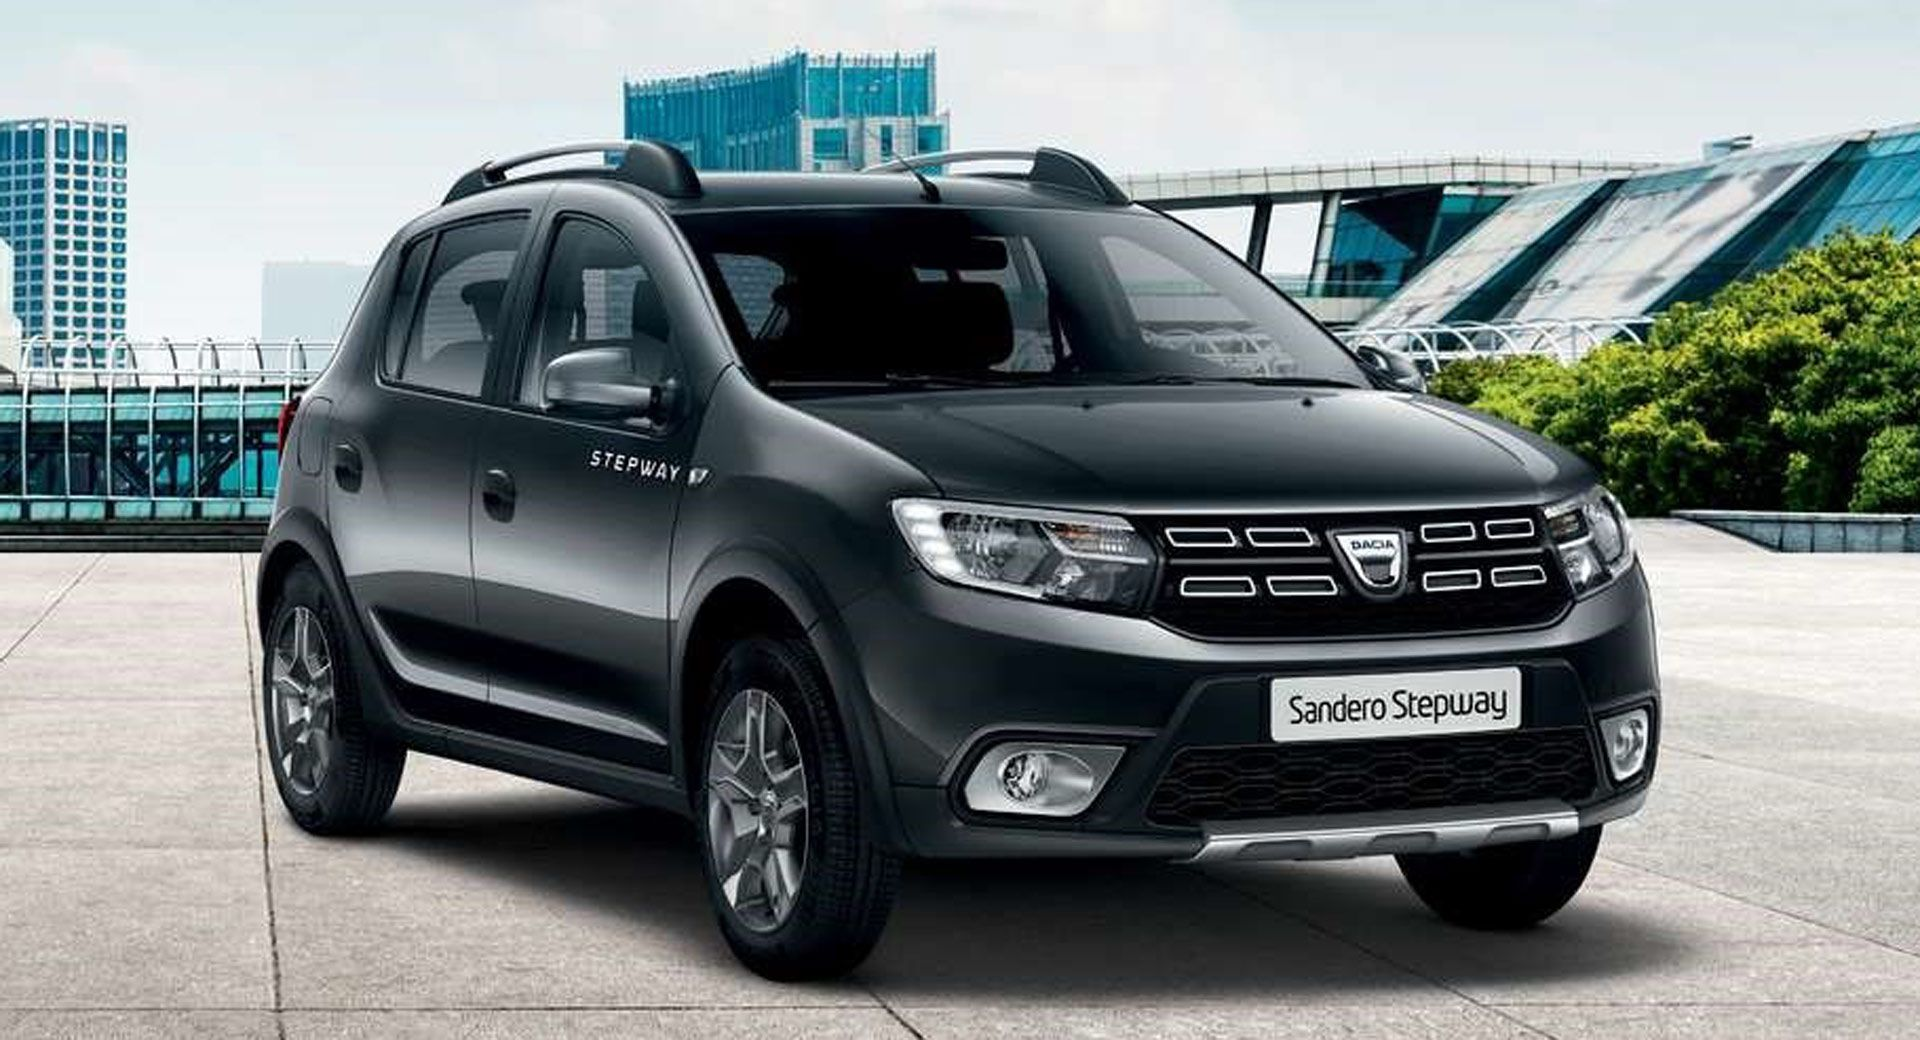 Dacia Sandero Stepway Escape Limited To 400 Examples ...